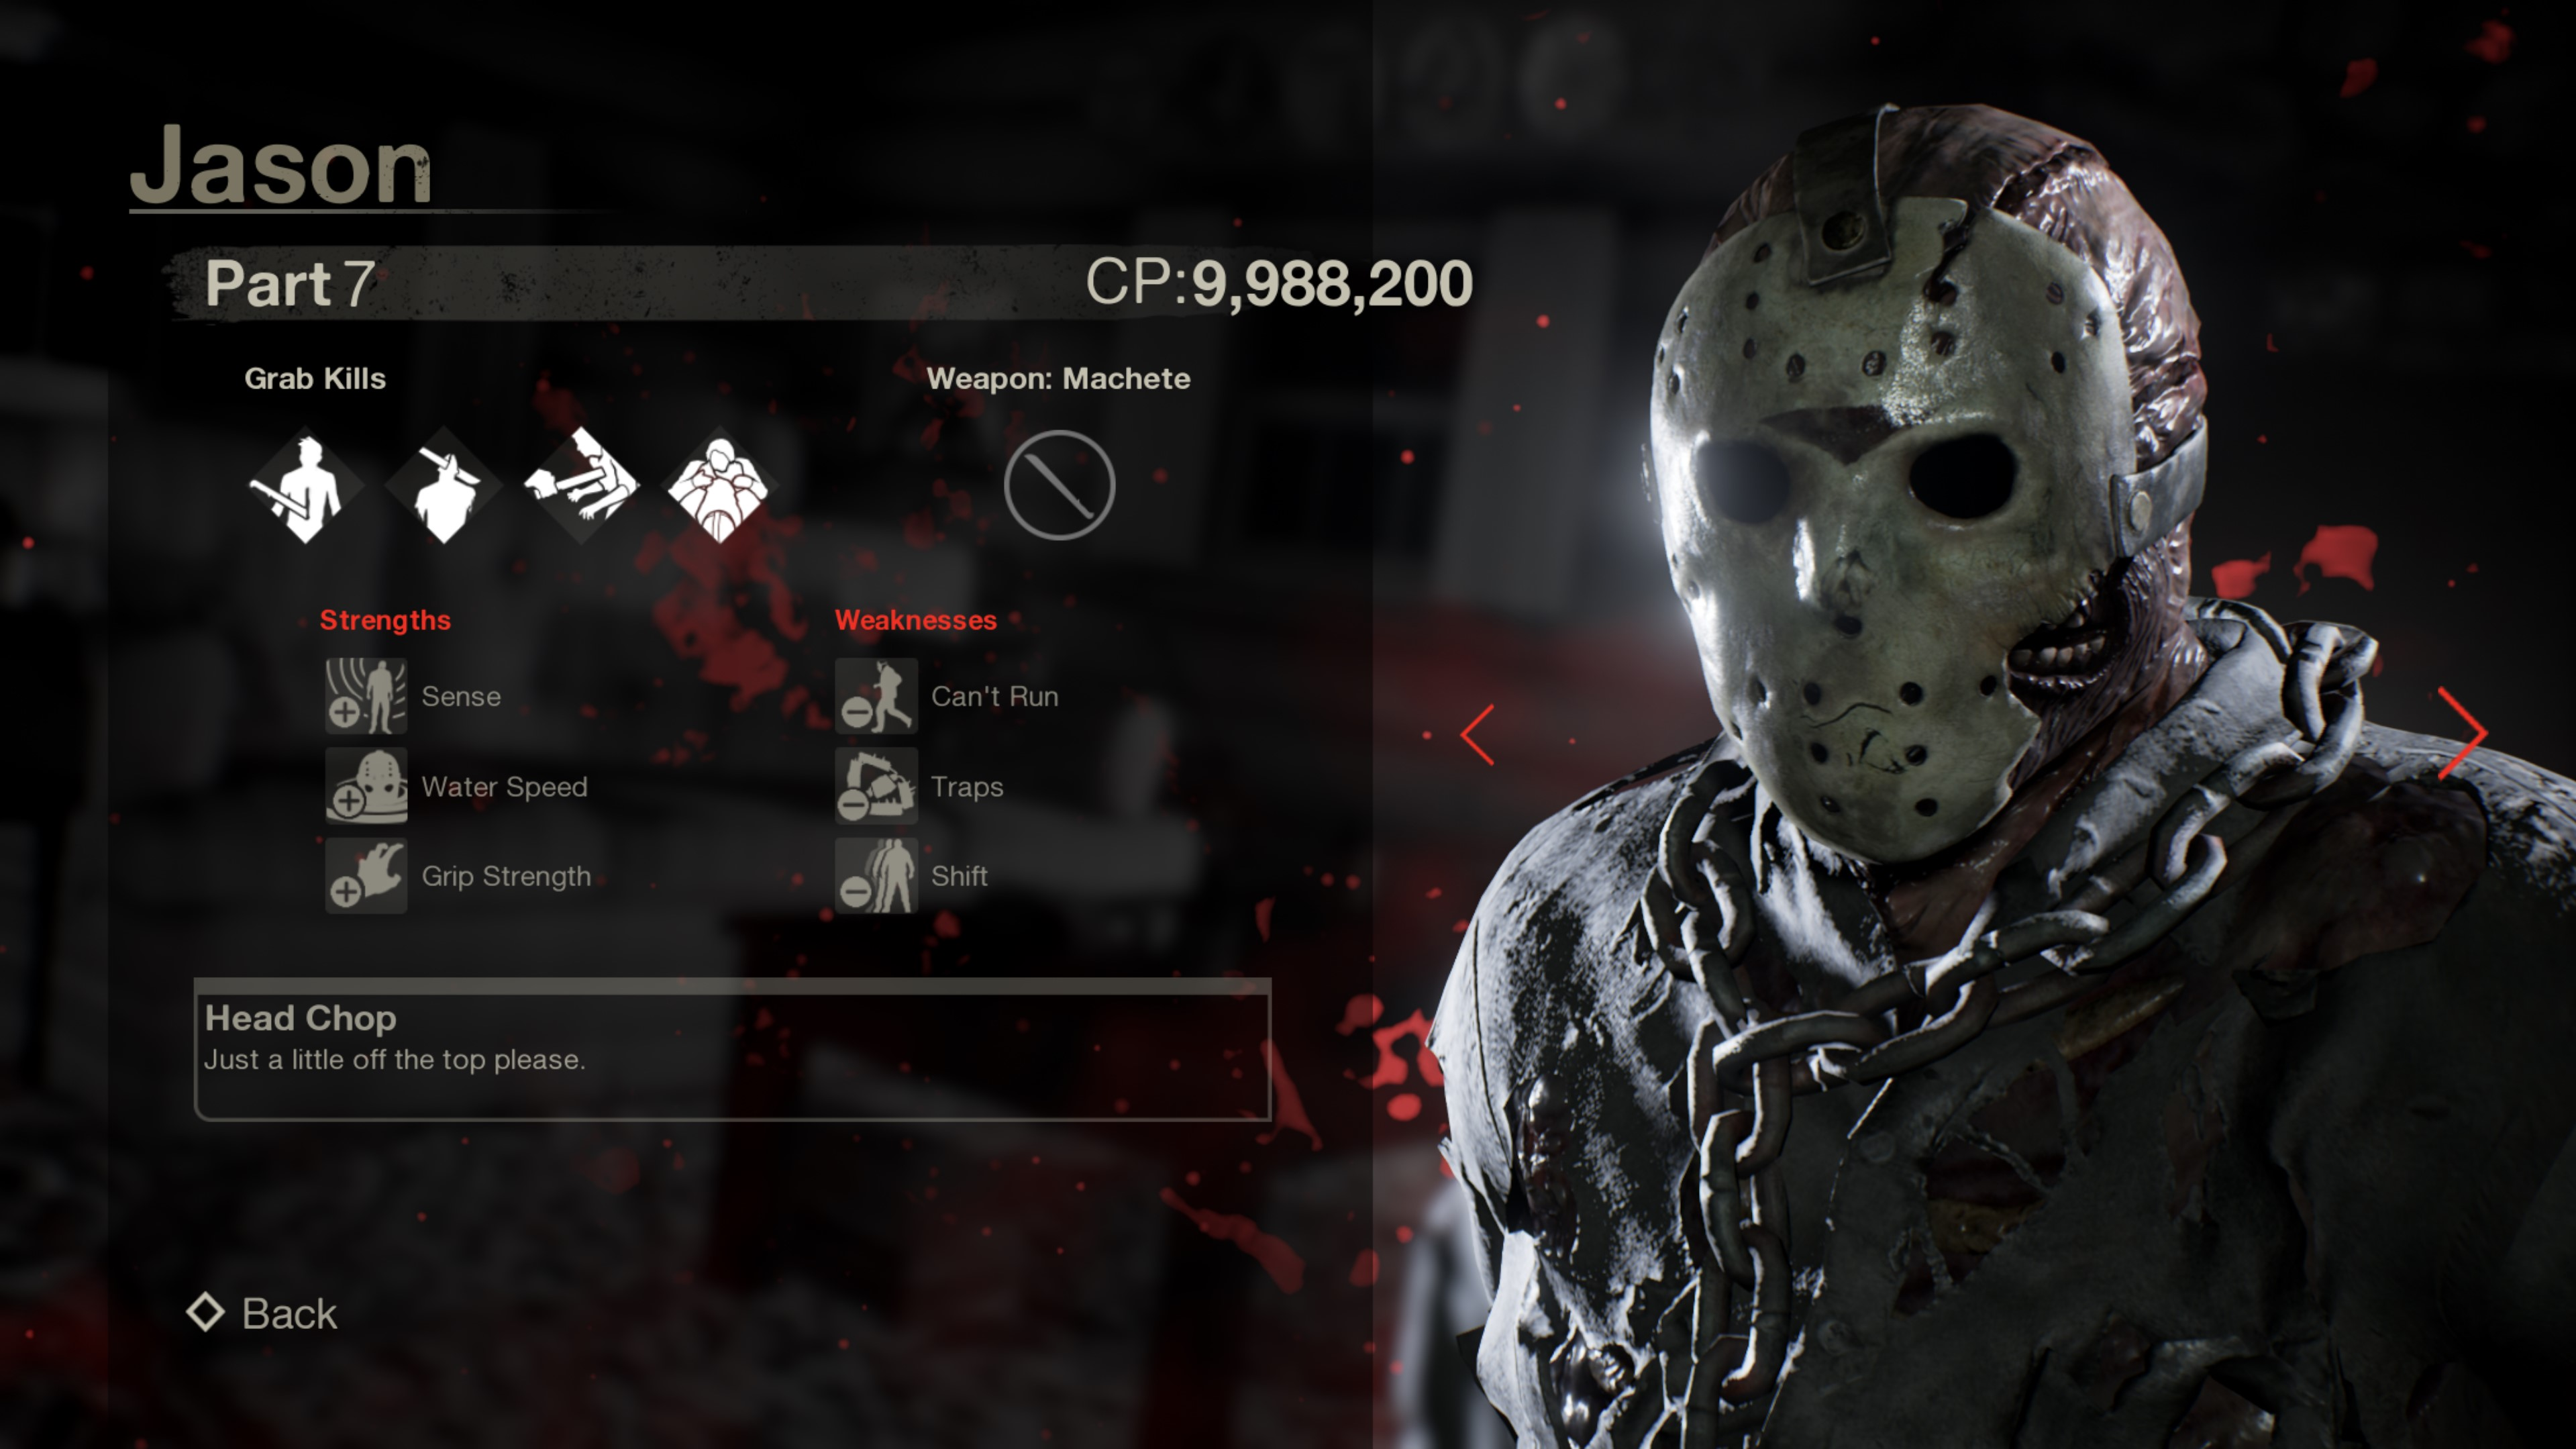 Jason from Friday the 13th part 7